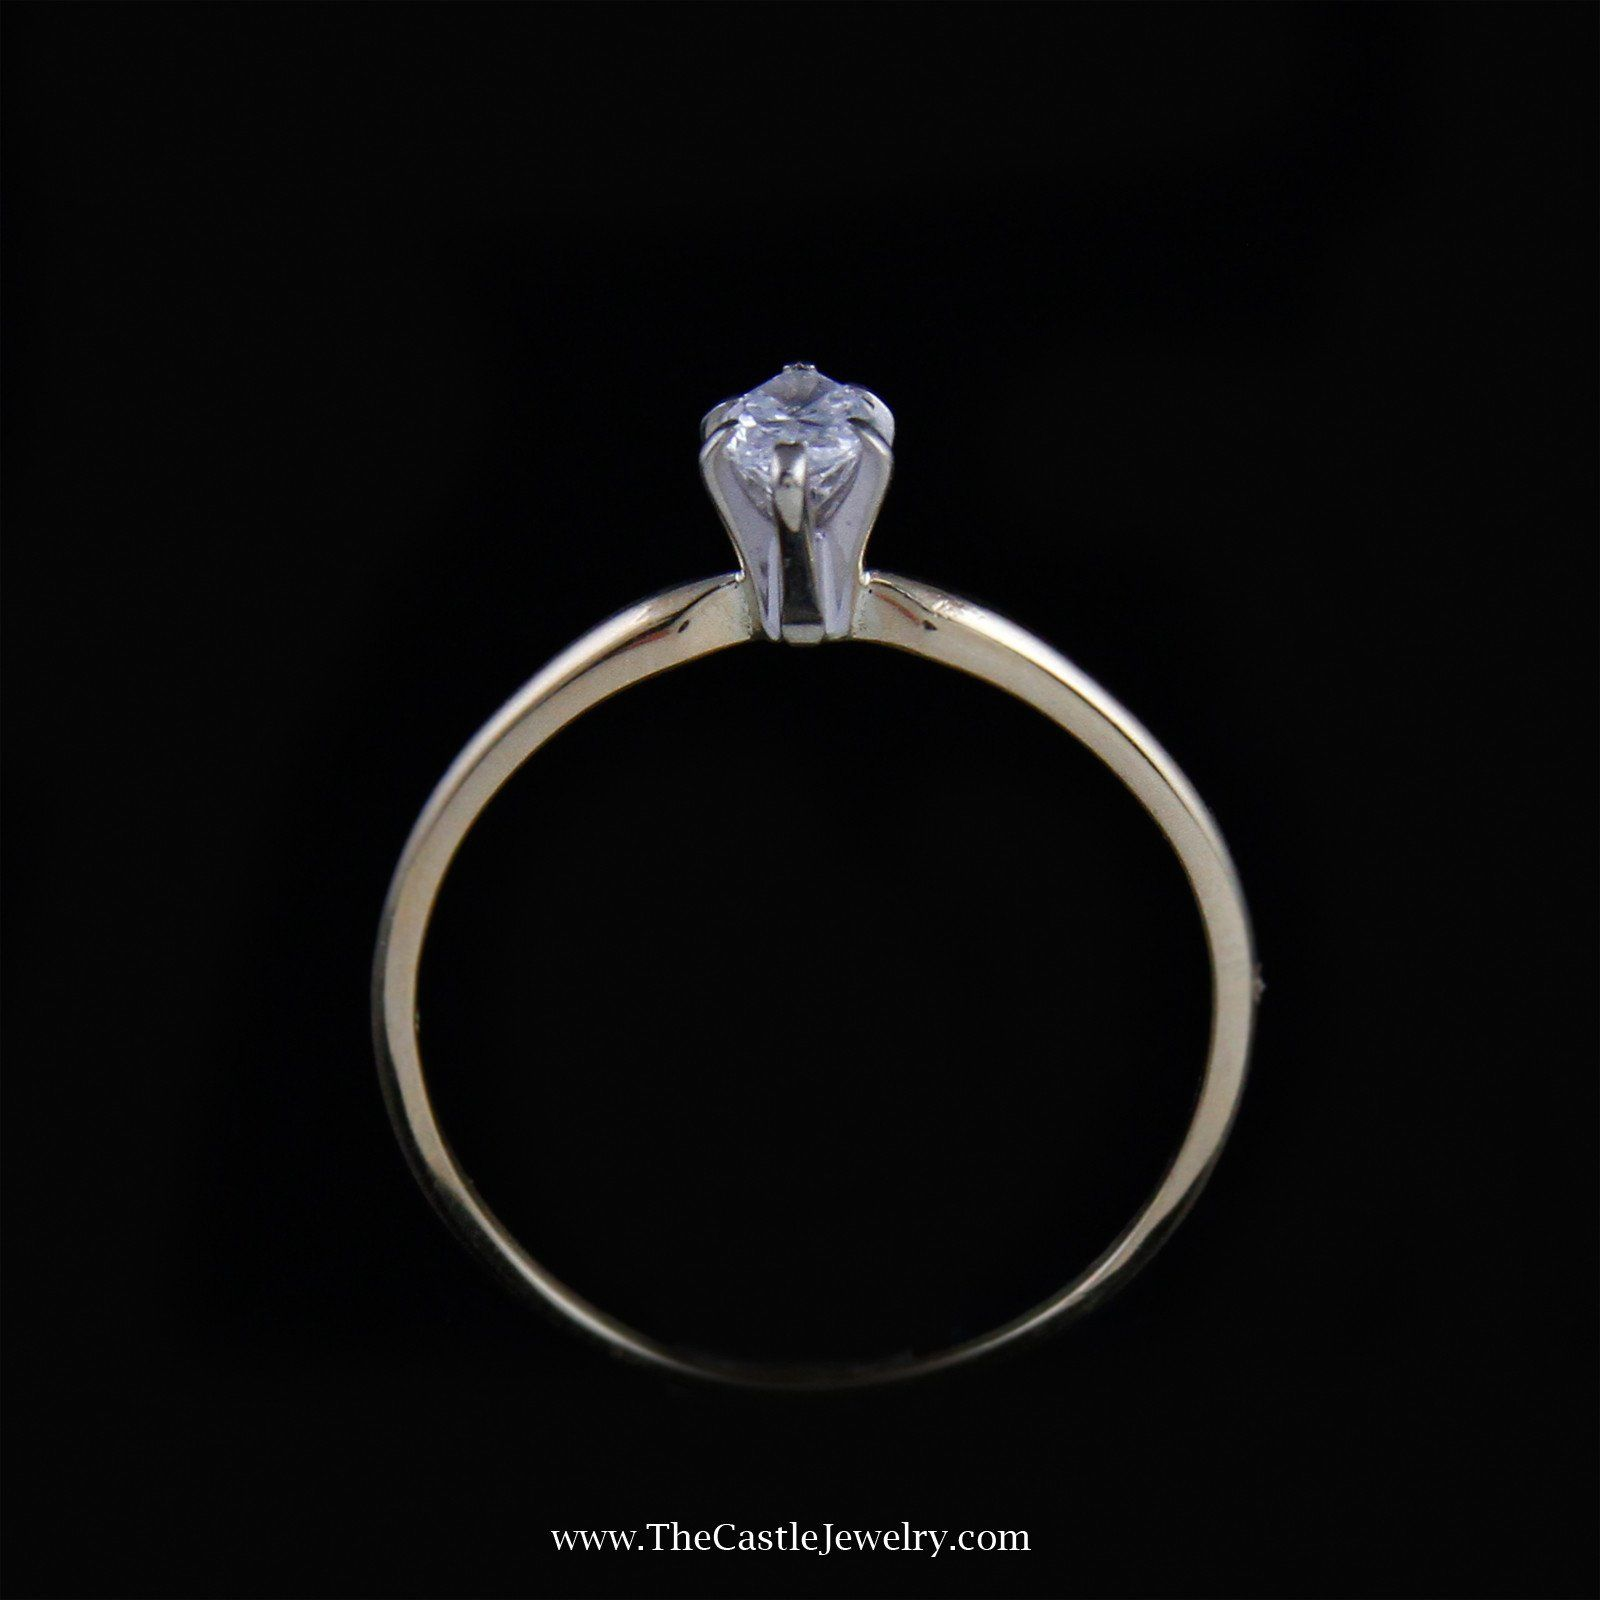 Beautiful Marquise Solitaire Diamond Engagement Ring in 14K Yellow Gold-1